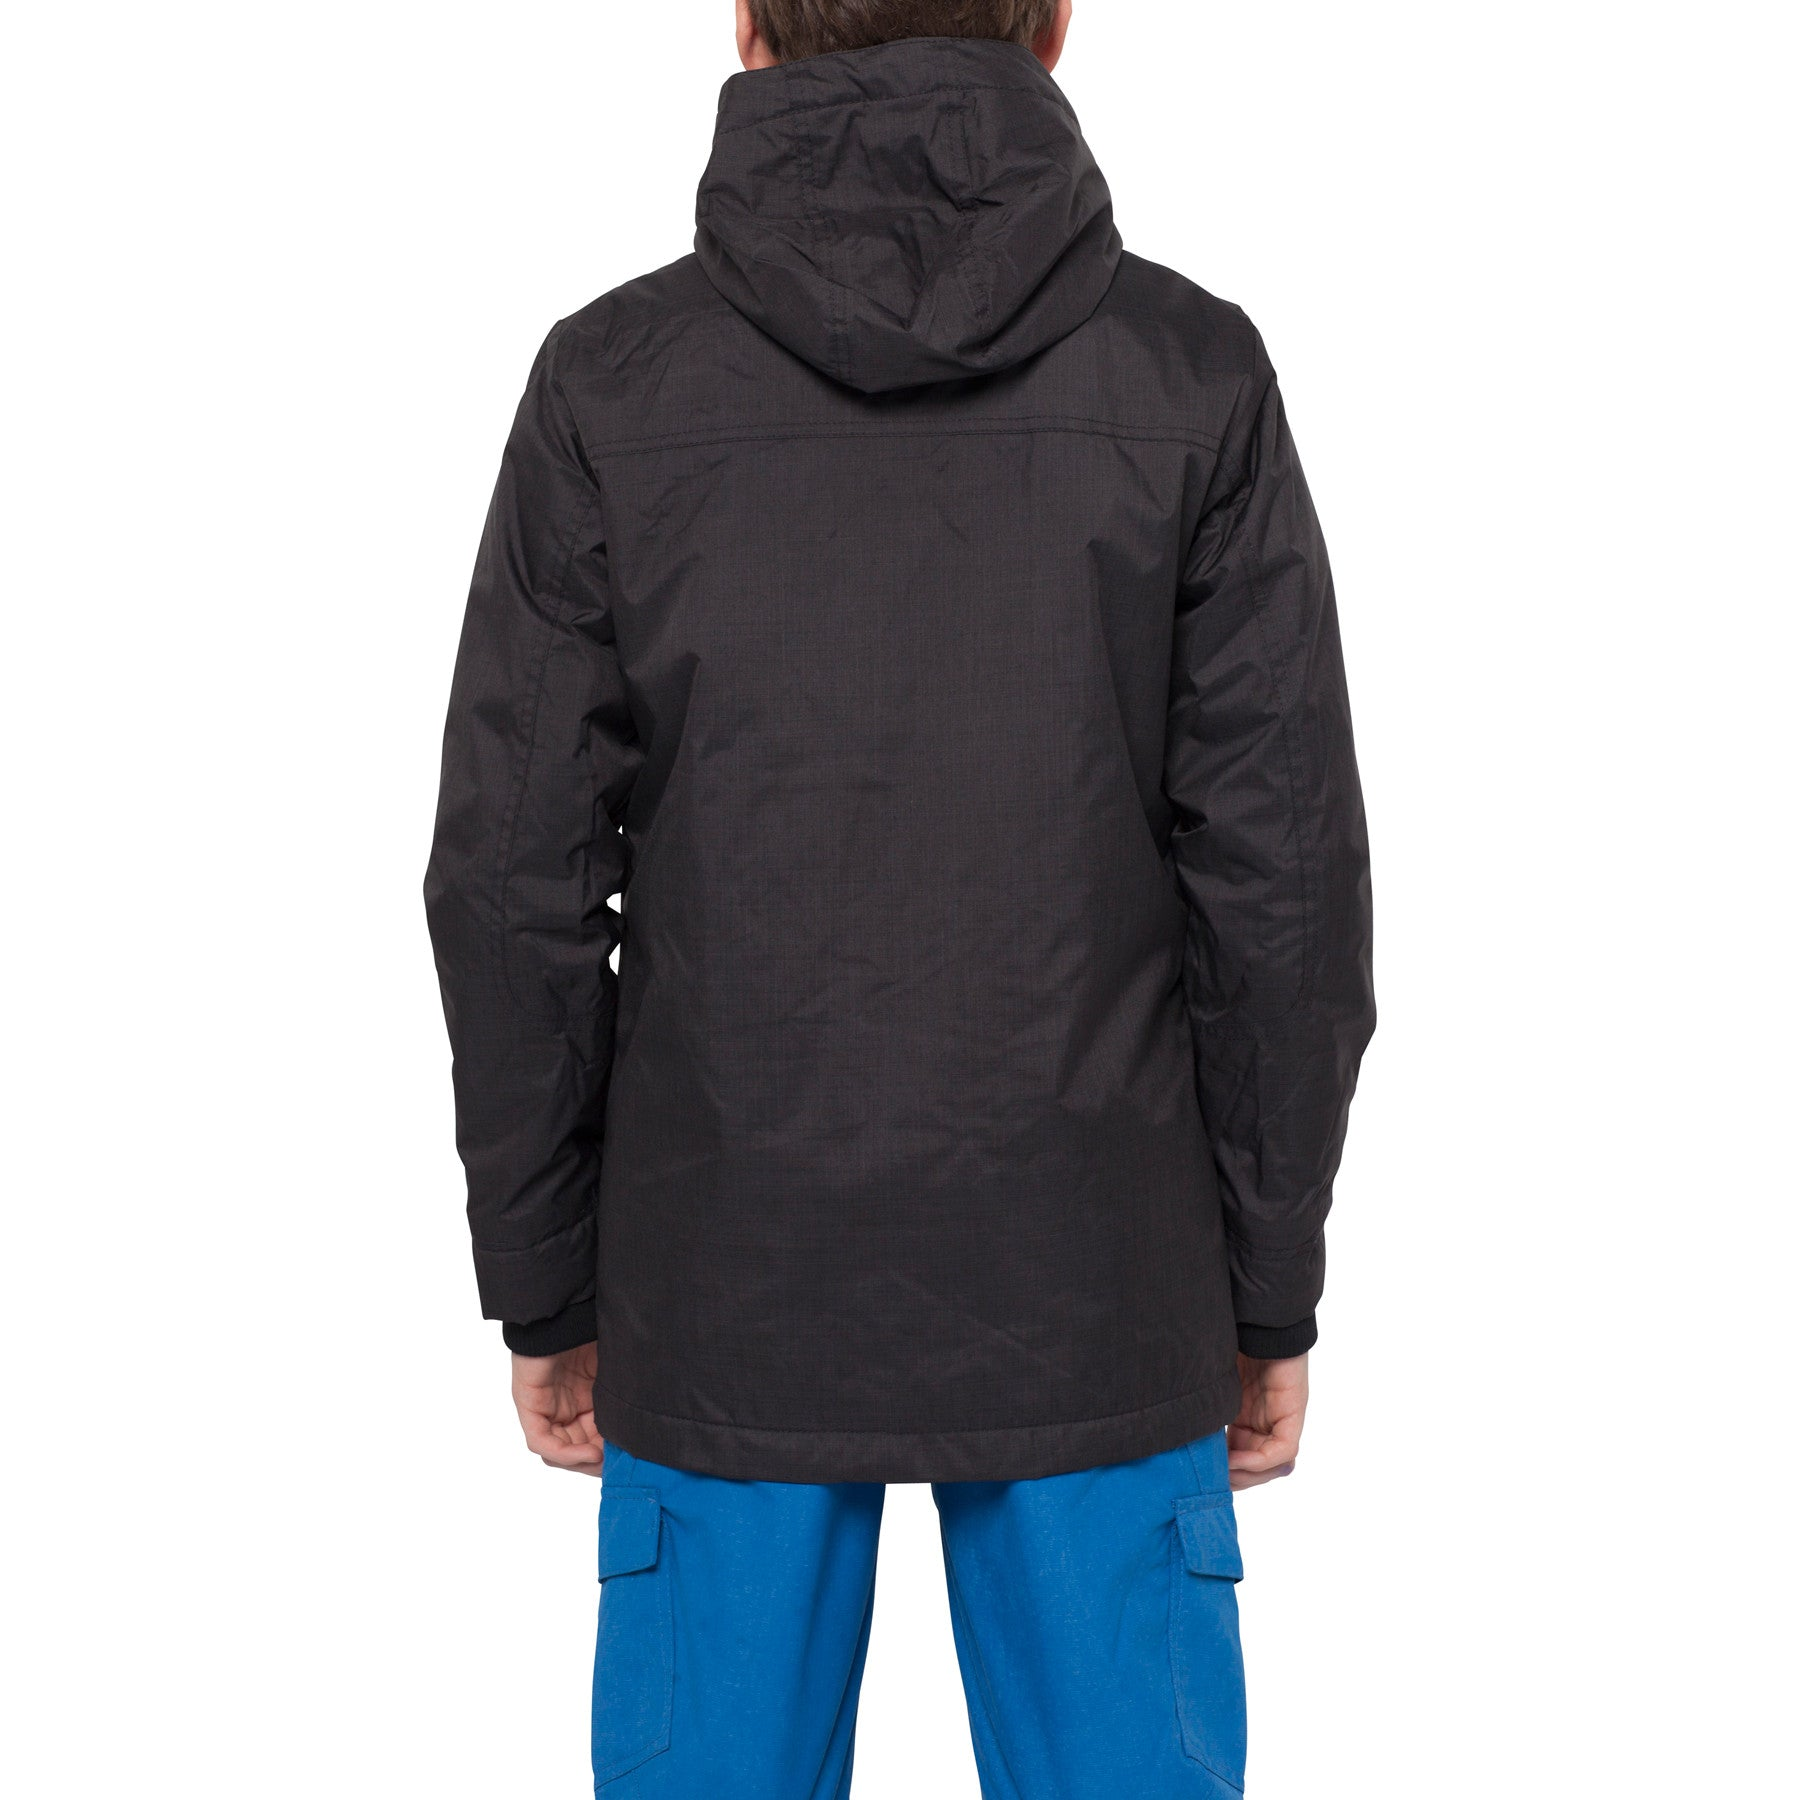 Kids Rockaway jacket Black Out - Stoked Boardshop  - 3